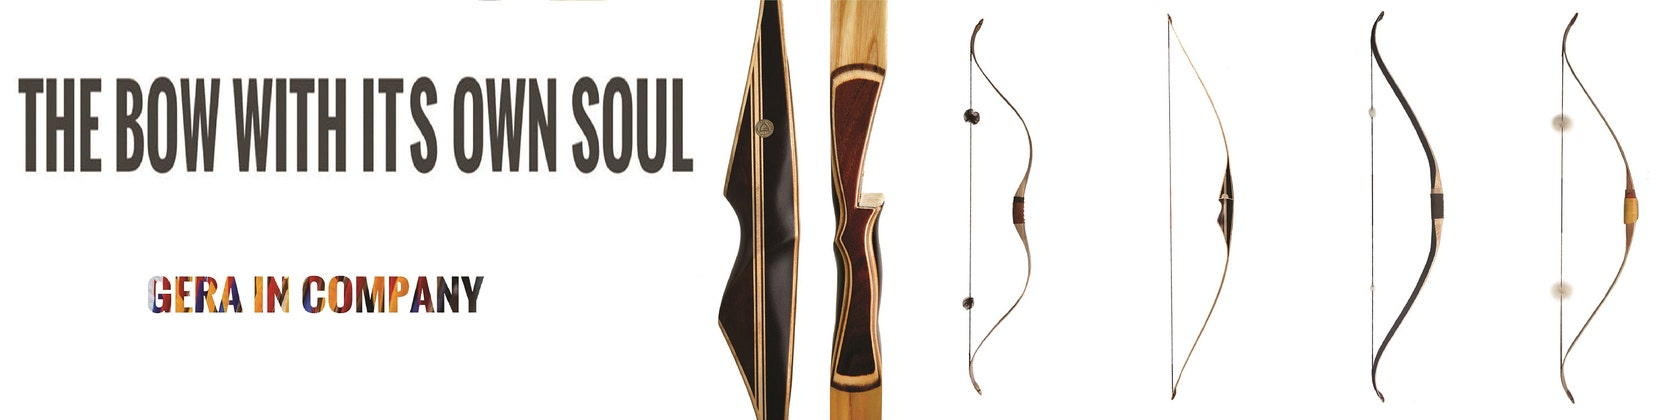 Finest Archery Bows and Accessories by GERAbows on Etsy